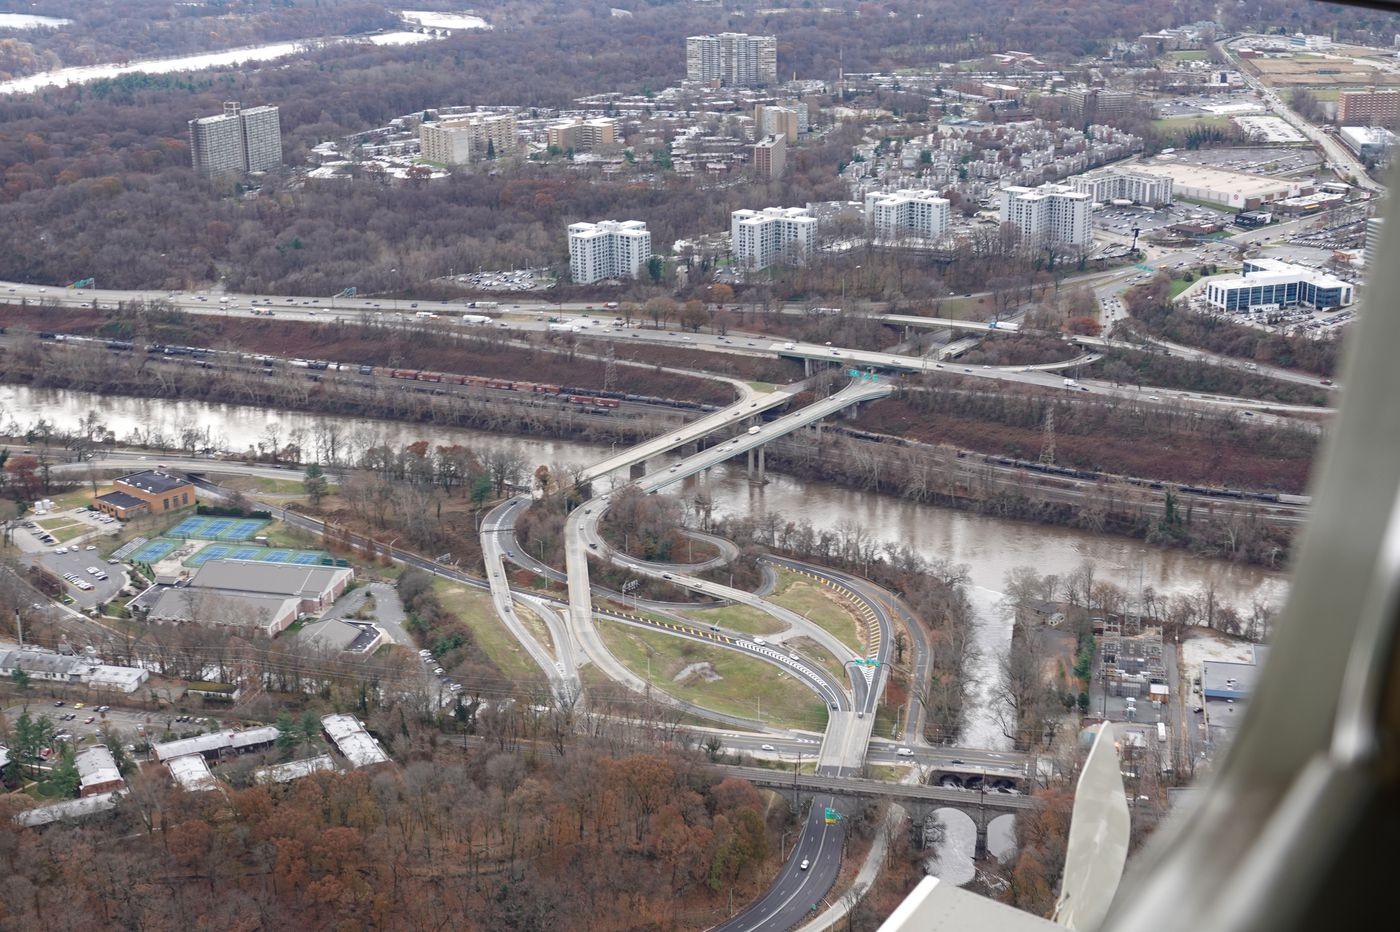 Threats to Wissahickon Creek: A view from 800 feet up